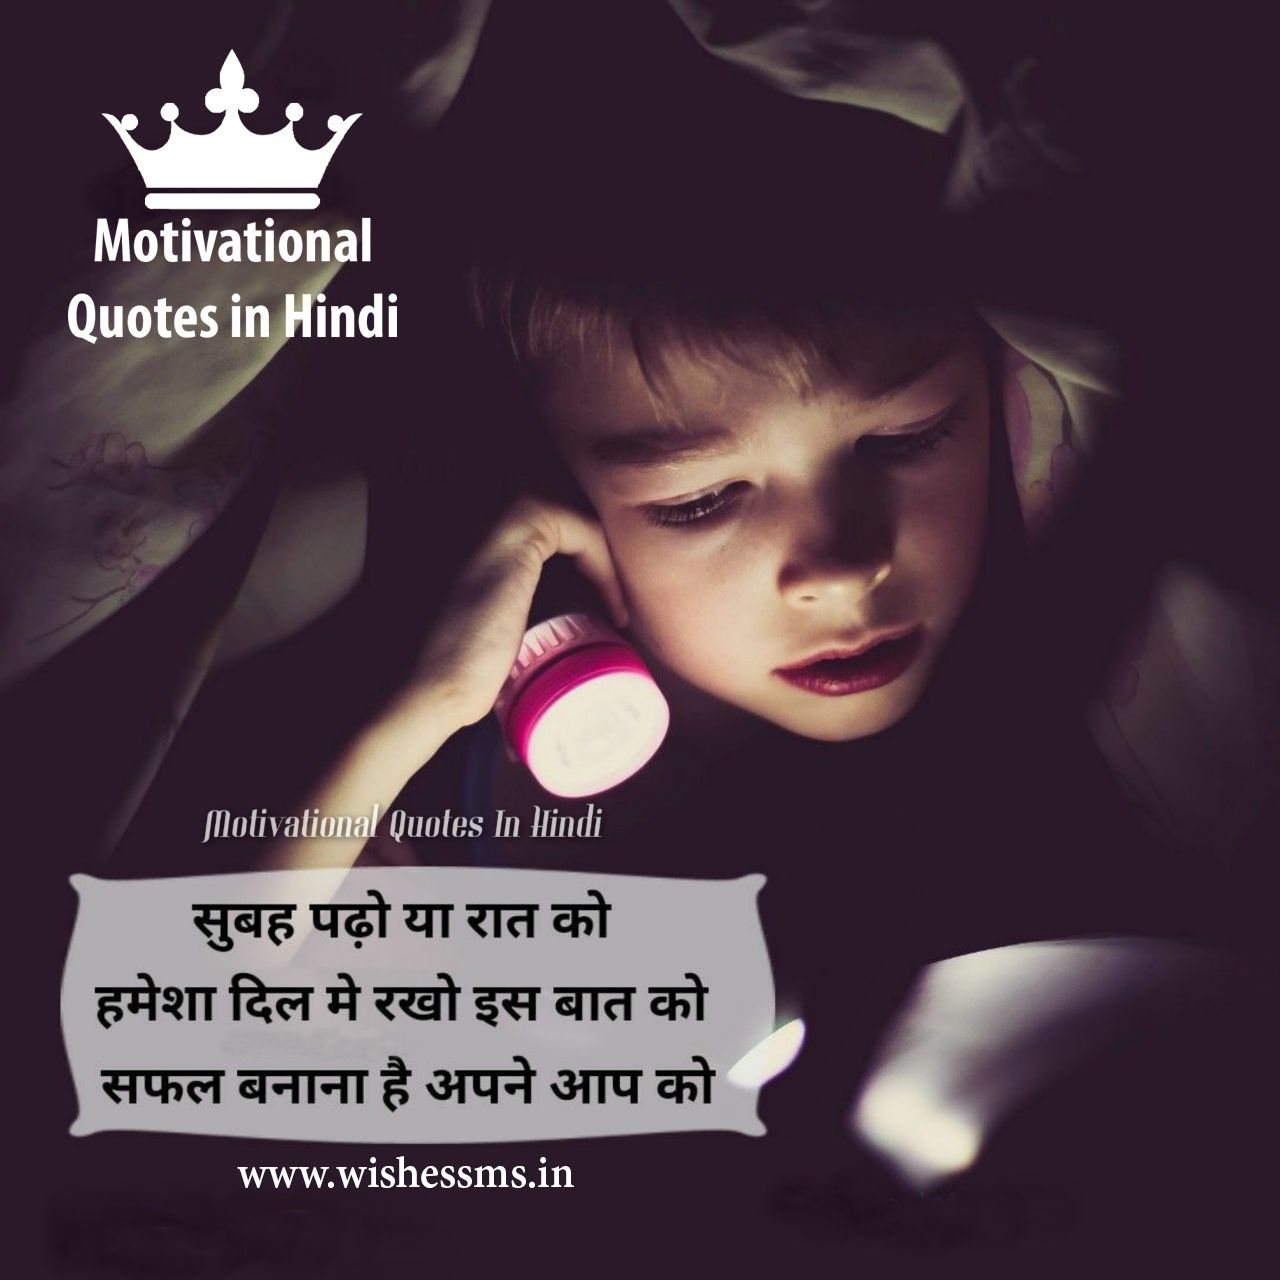 Motivational Pictures For Success In Hindi For Student Motivational Pictures For Success Motivational Quotes Motivational Quotes For Students